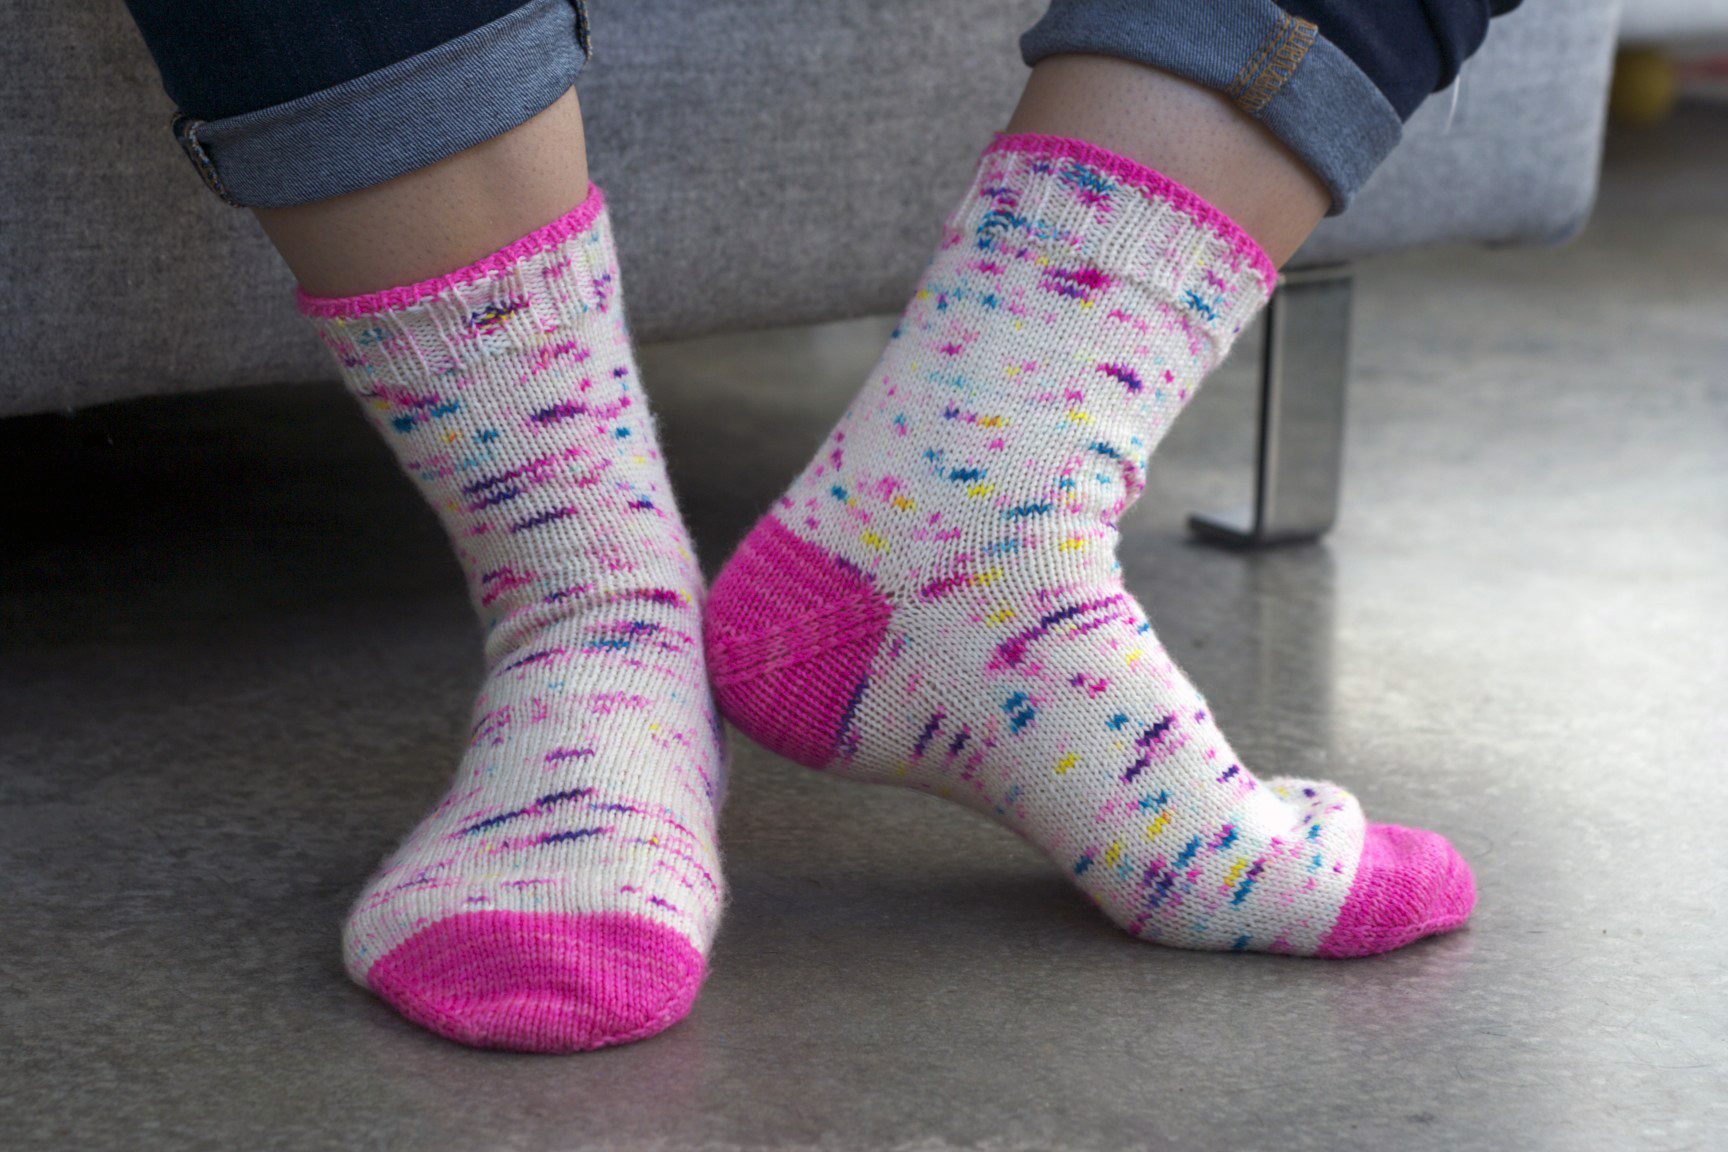 Tip Toe Up socks knitting pattern for babies, kids and adults designed by Holli Yeoh